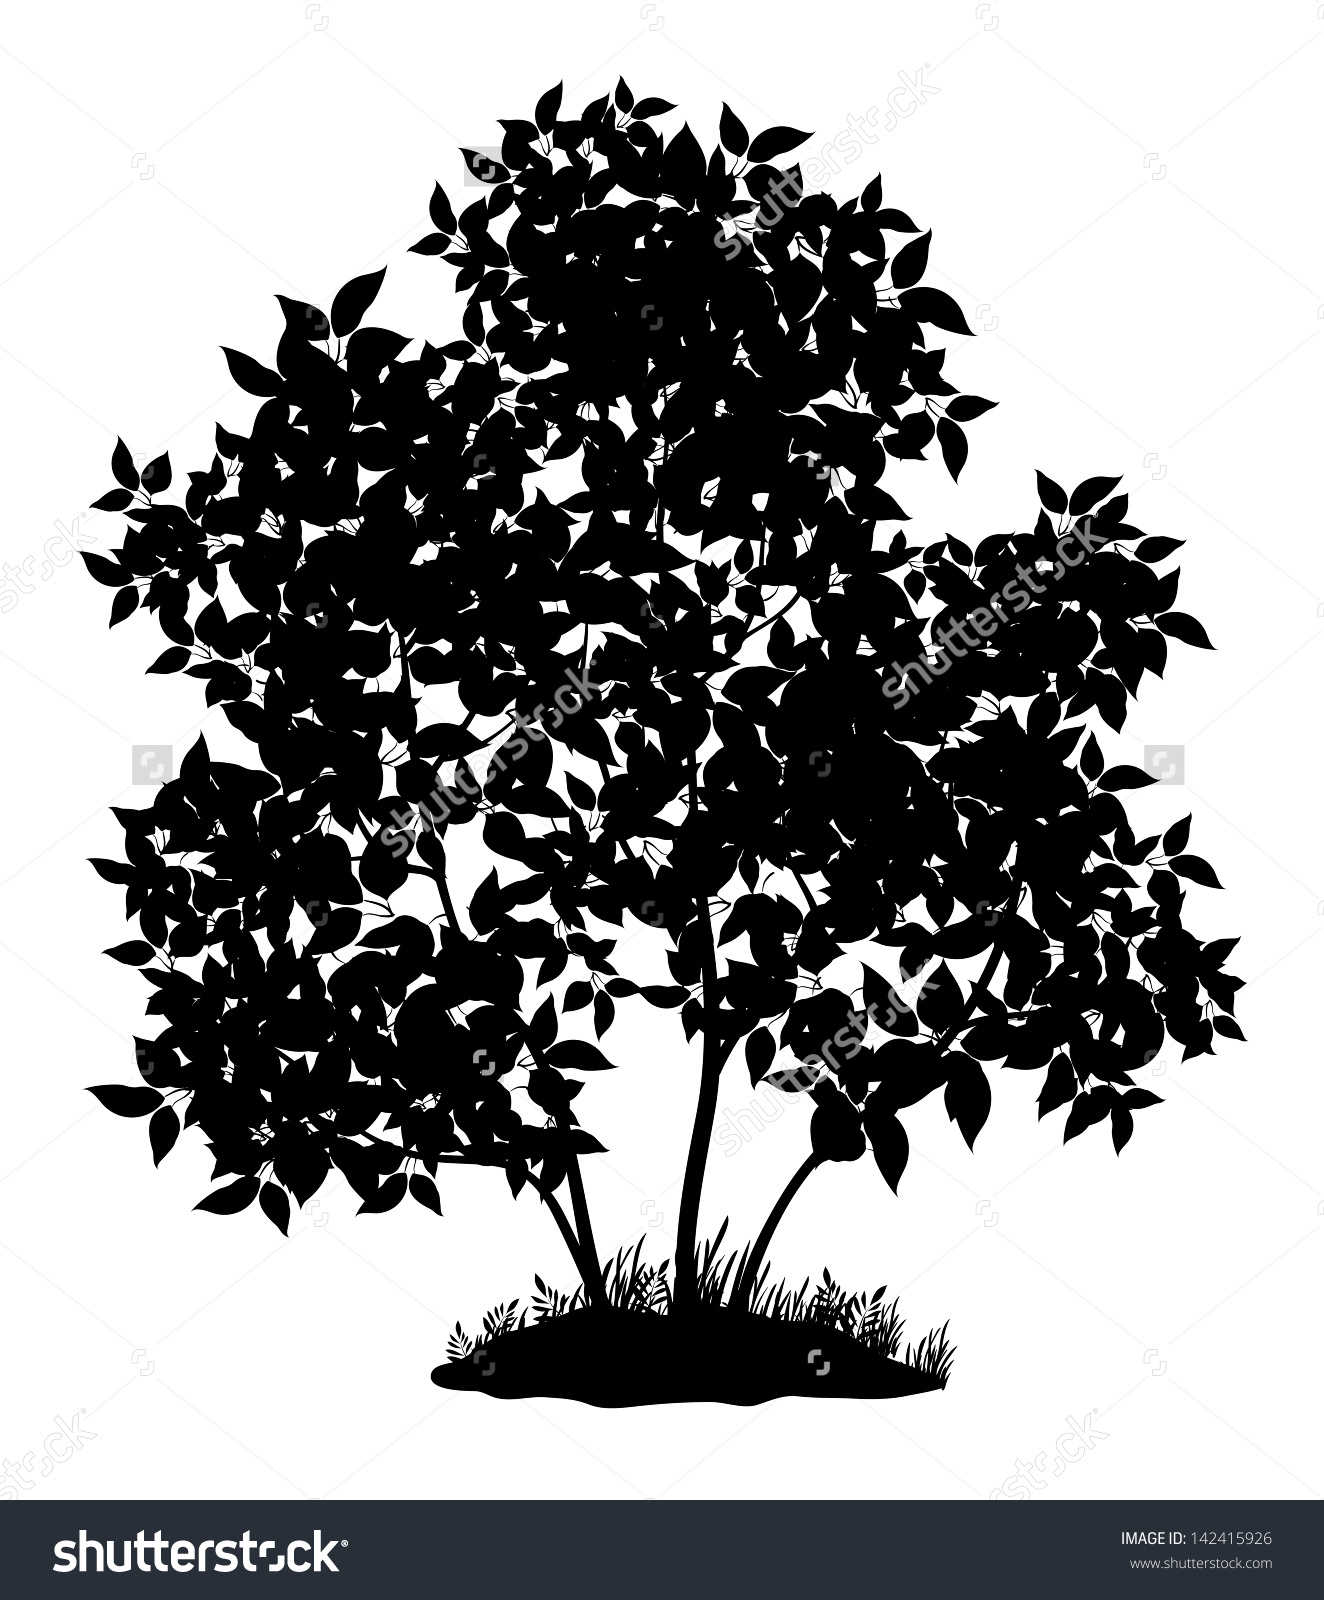 Lilac Tree Leaves Grass Black Silhouette Stock Vector 142415926.